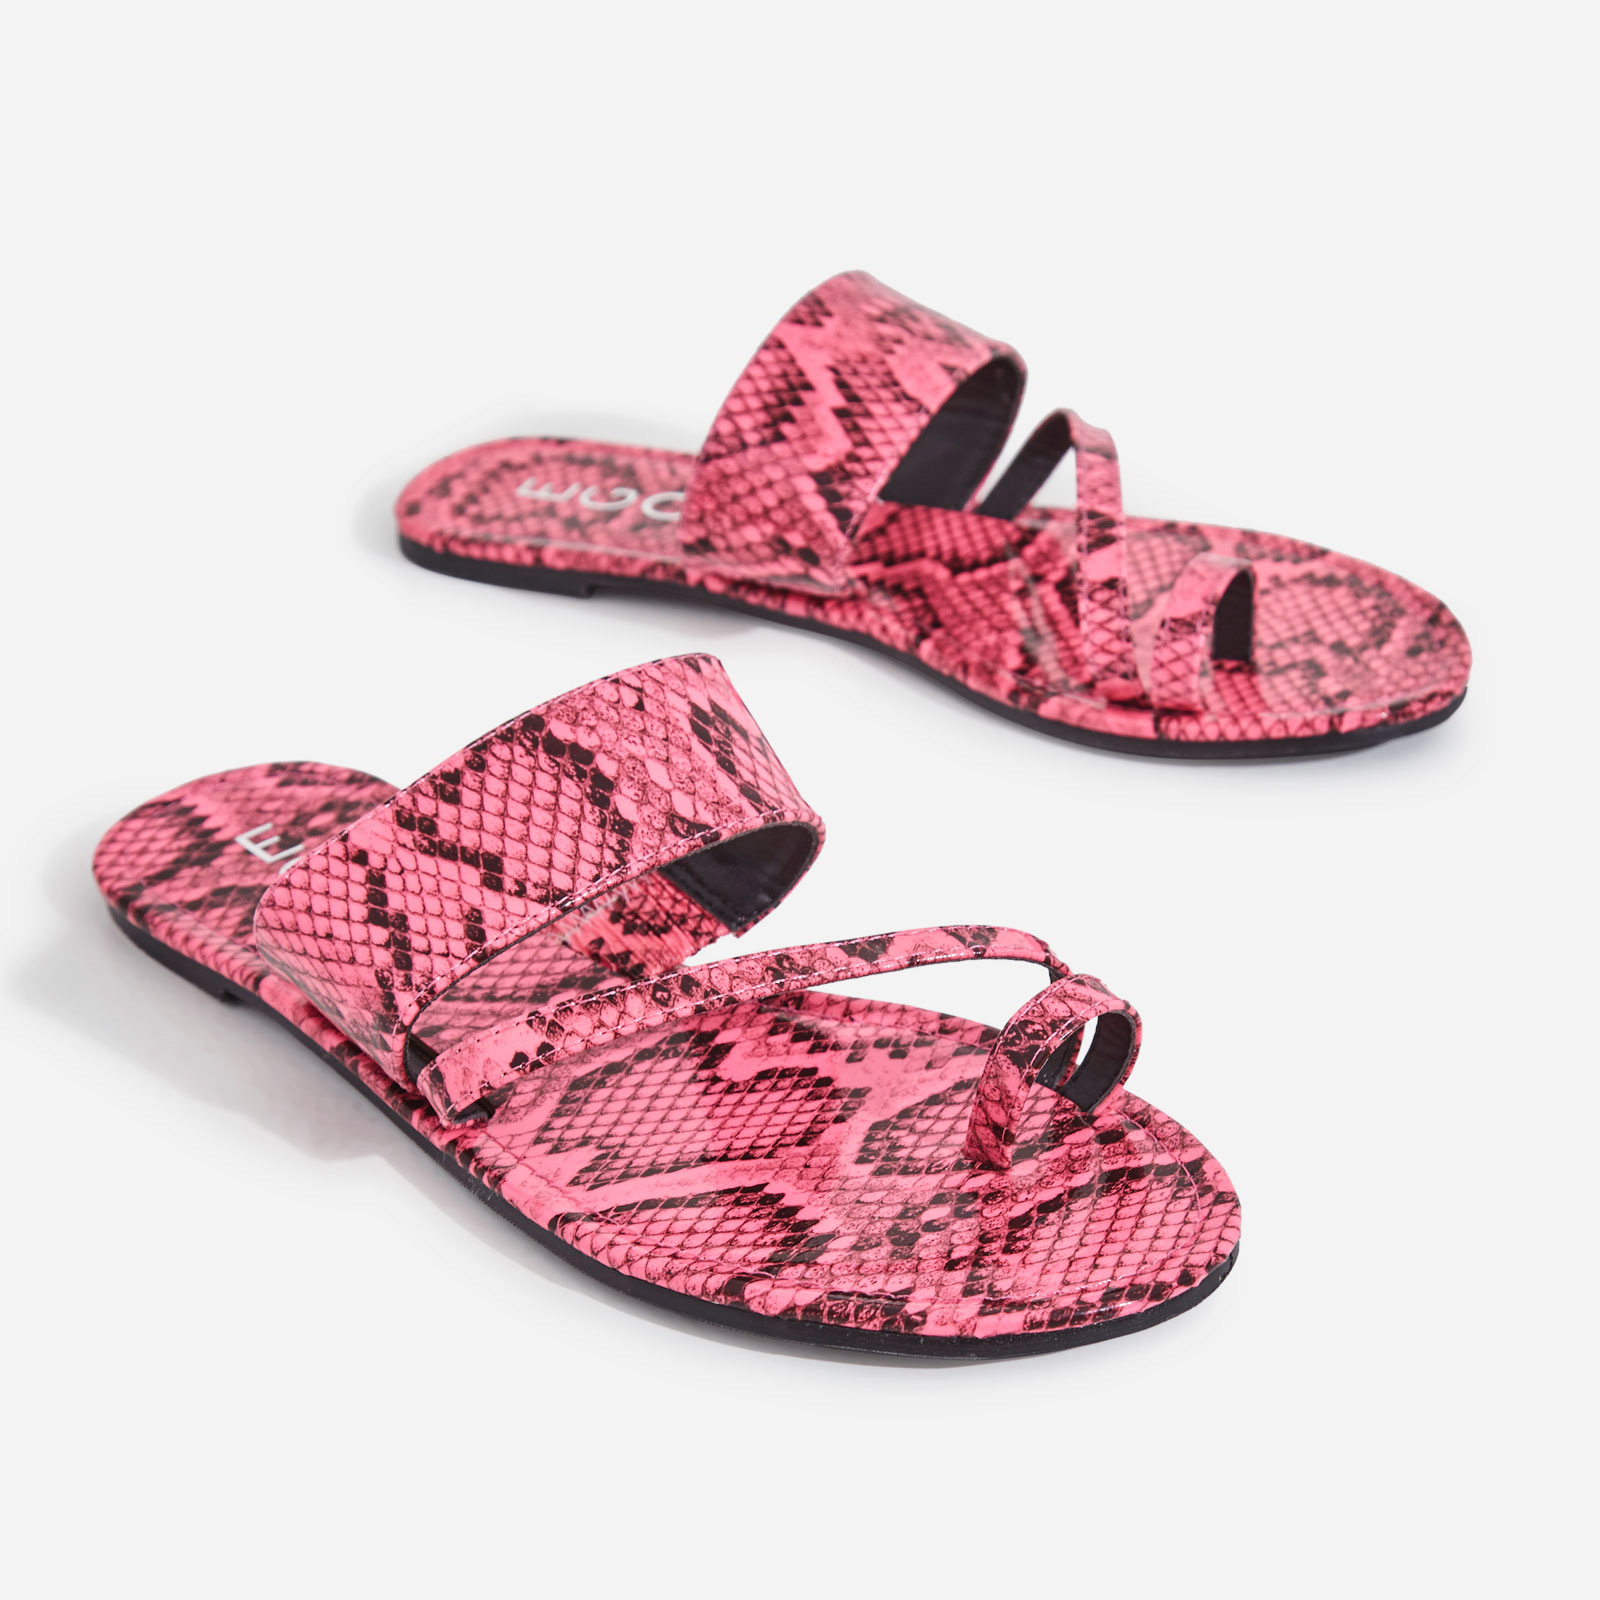 Brock Toe Strap Slider In Pink Snake Print Faux Leather